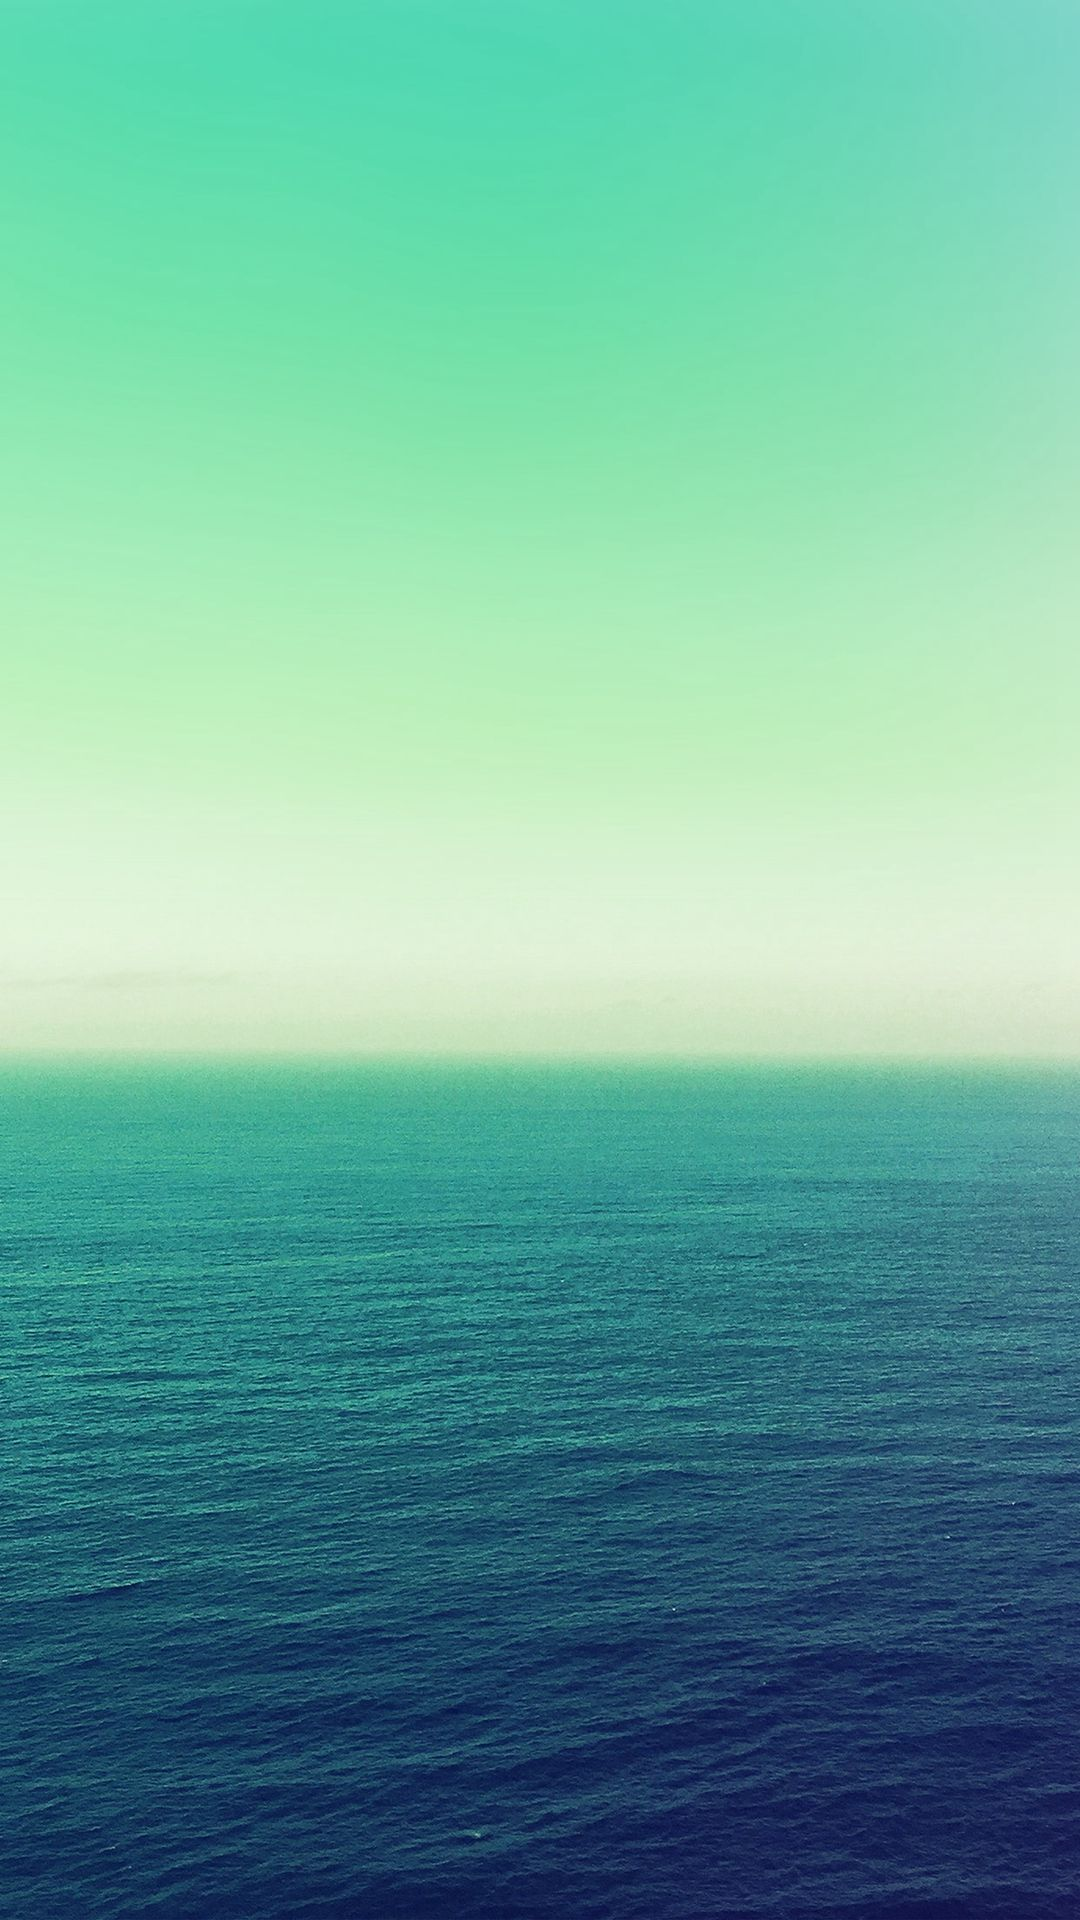 Calm Sea Green Ocean Water Summer Day Nature iPhone 6